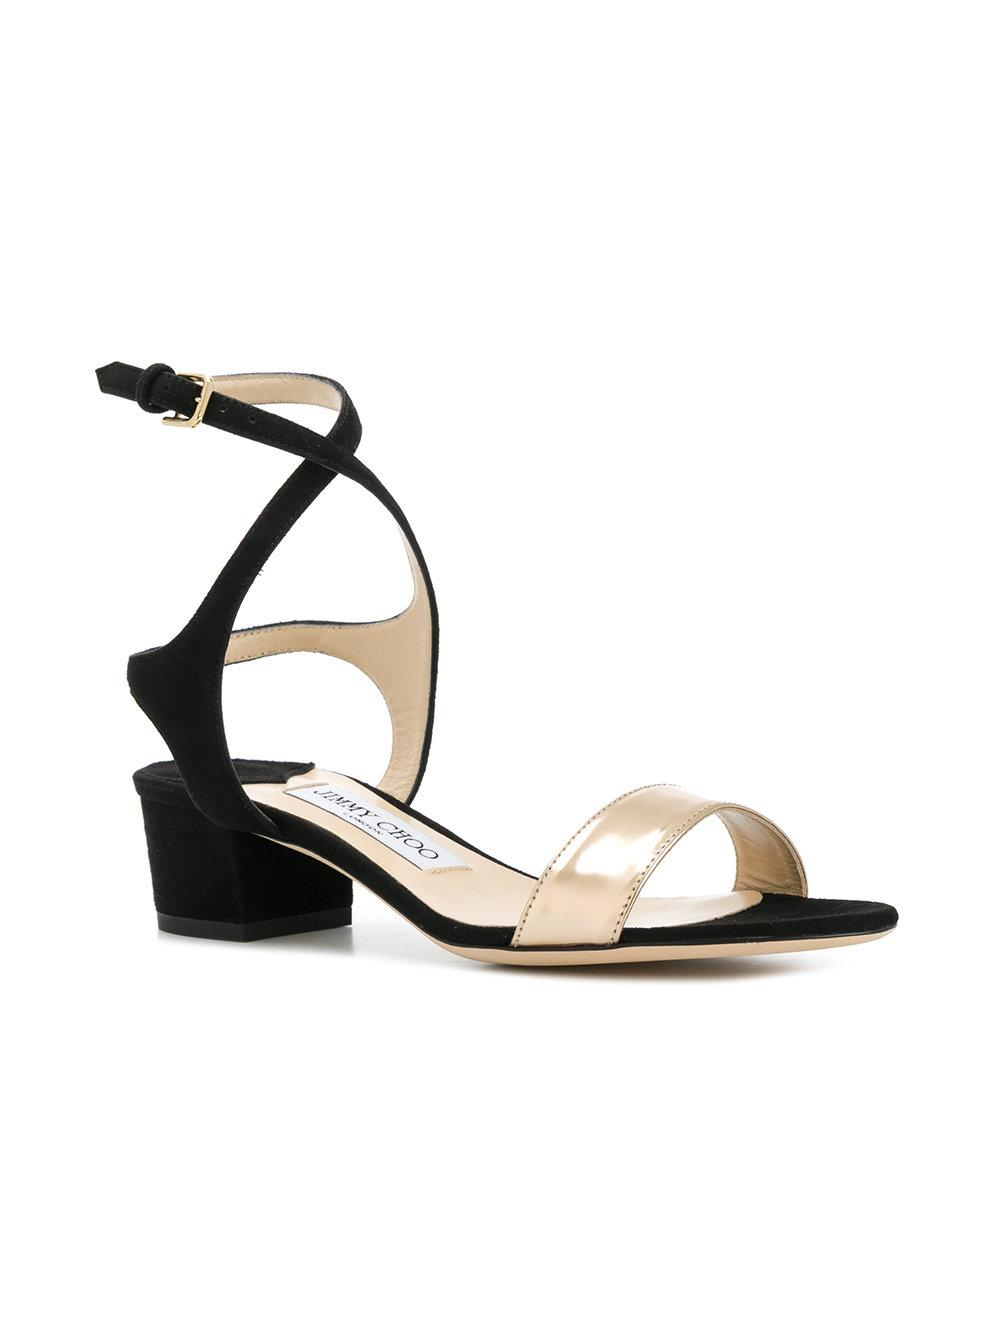 Marine 35 Suede And Metallic Leather Sandals - Black Jimmy Choo London 6ZkIVY